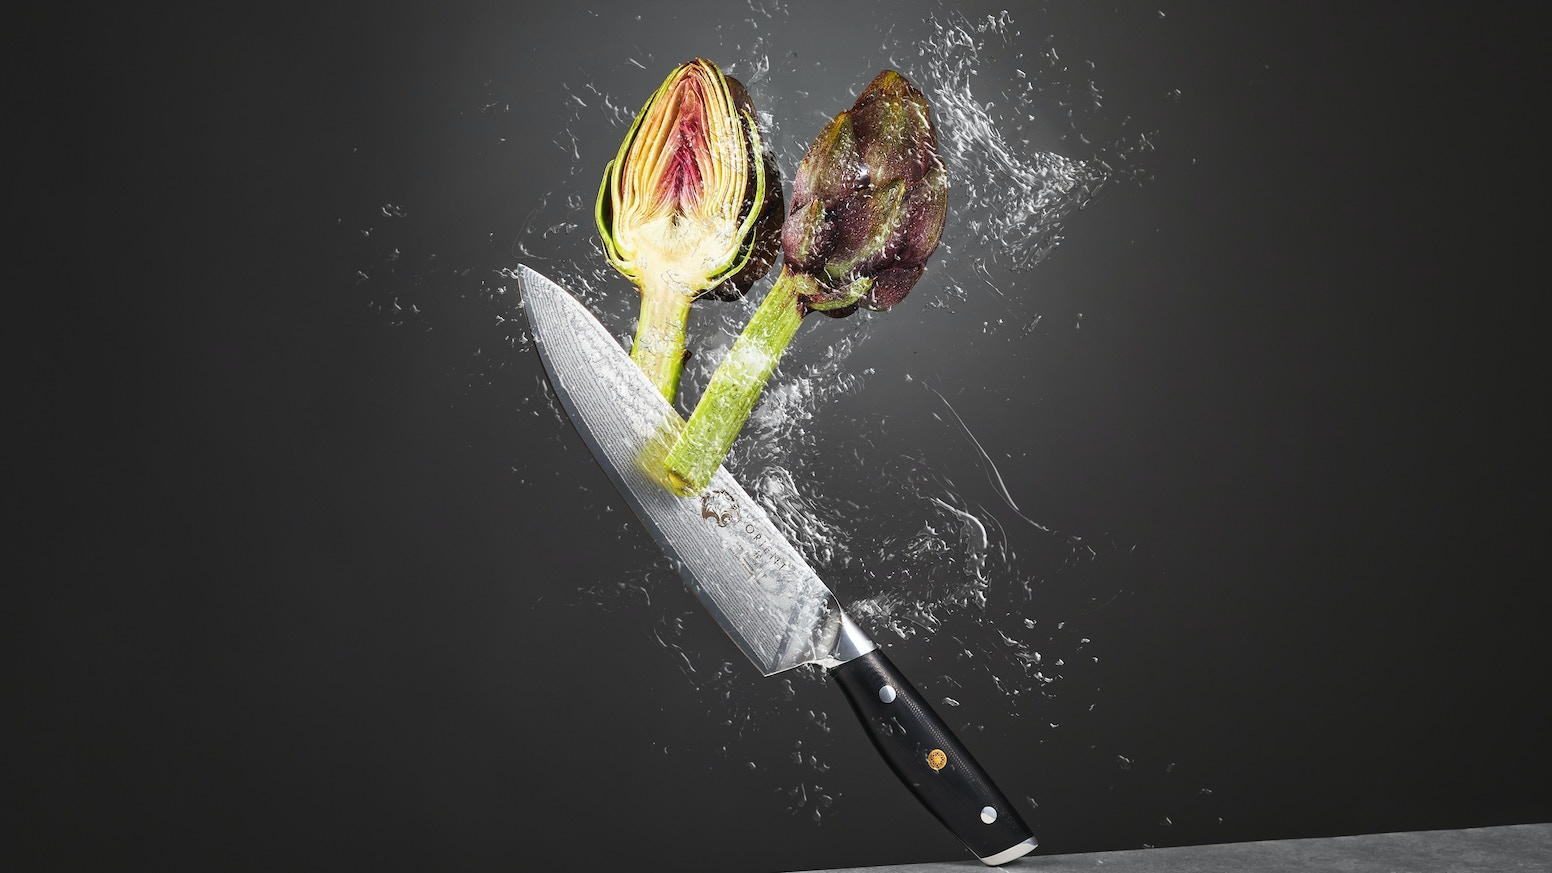 Finally: The worlds finest chef's knives, blending elite Japanese steel with awesome ergonomics - direct to your door - no middlemen!